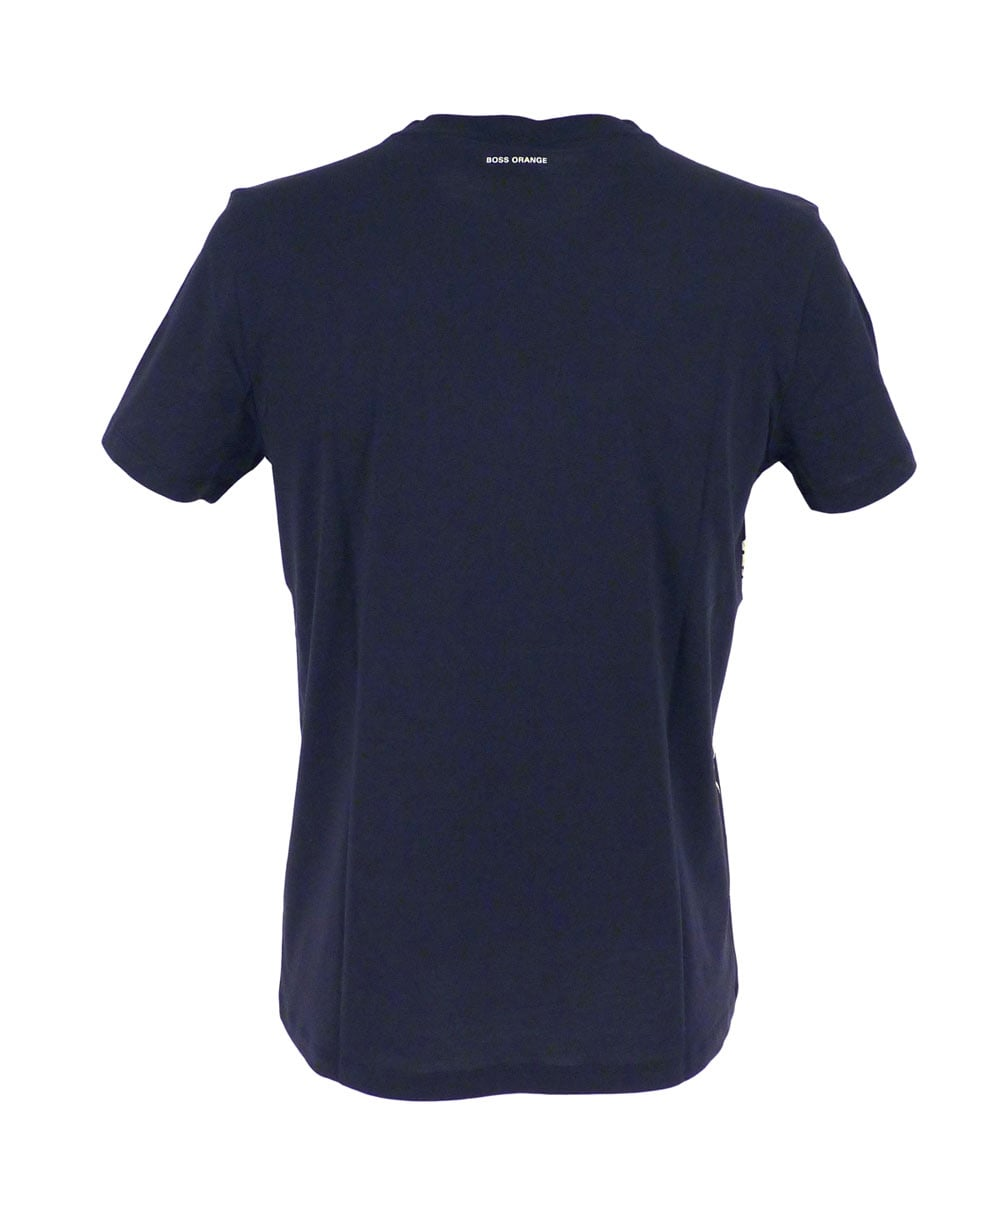 Hugo Boss Navy Sons Of Japan Design 39 Tomsin 5 39 T Shirt